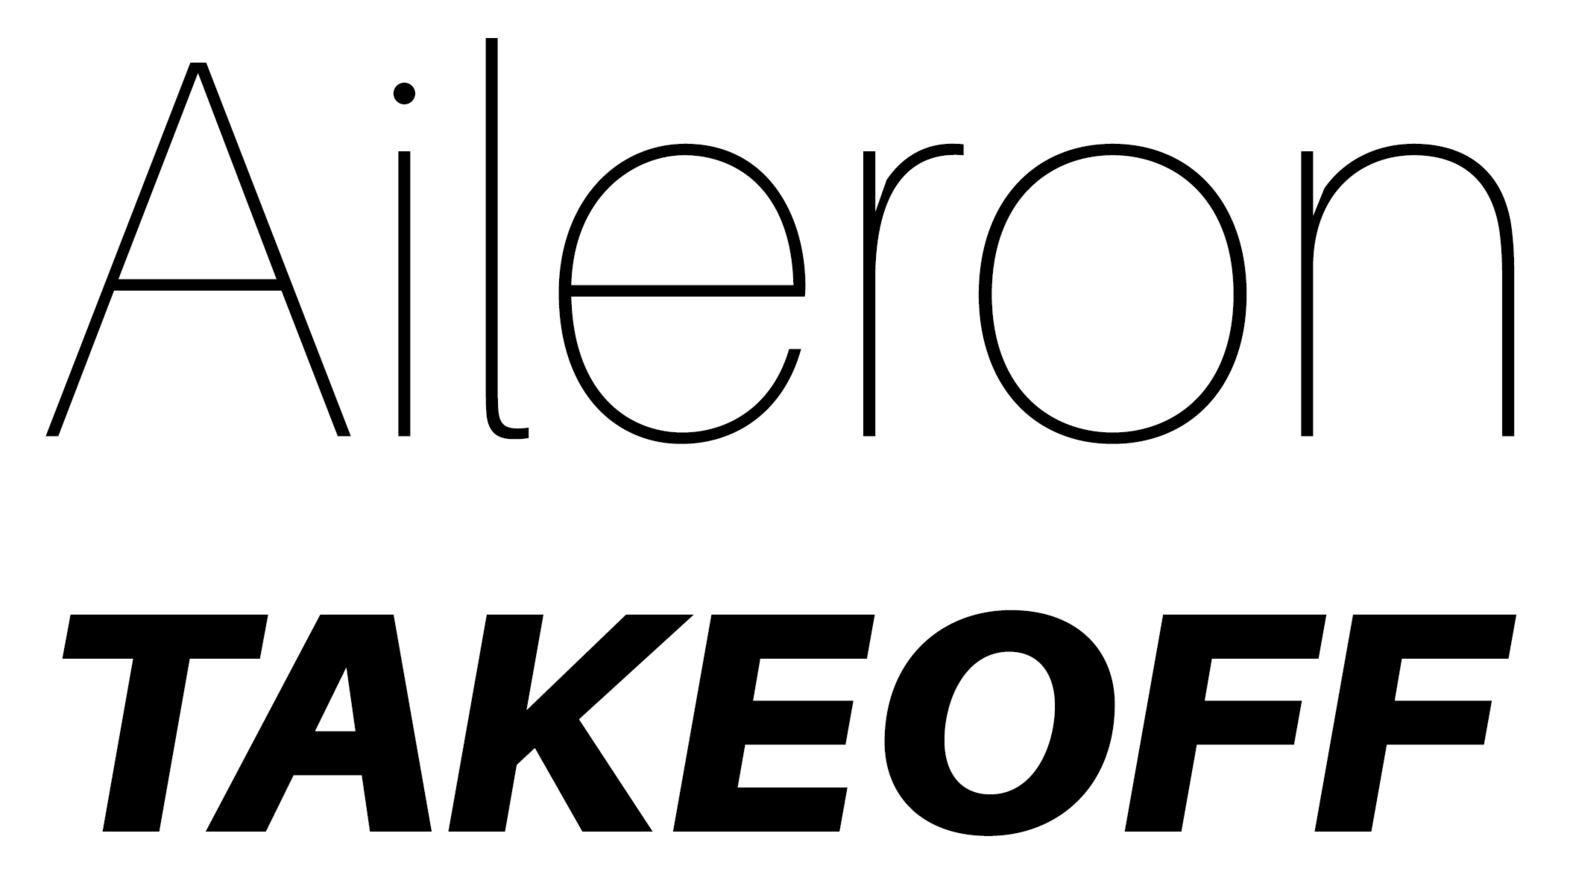 Example of the Aileron font.